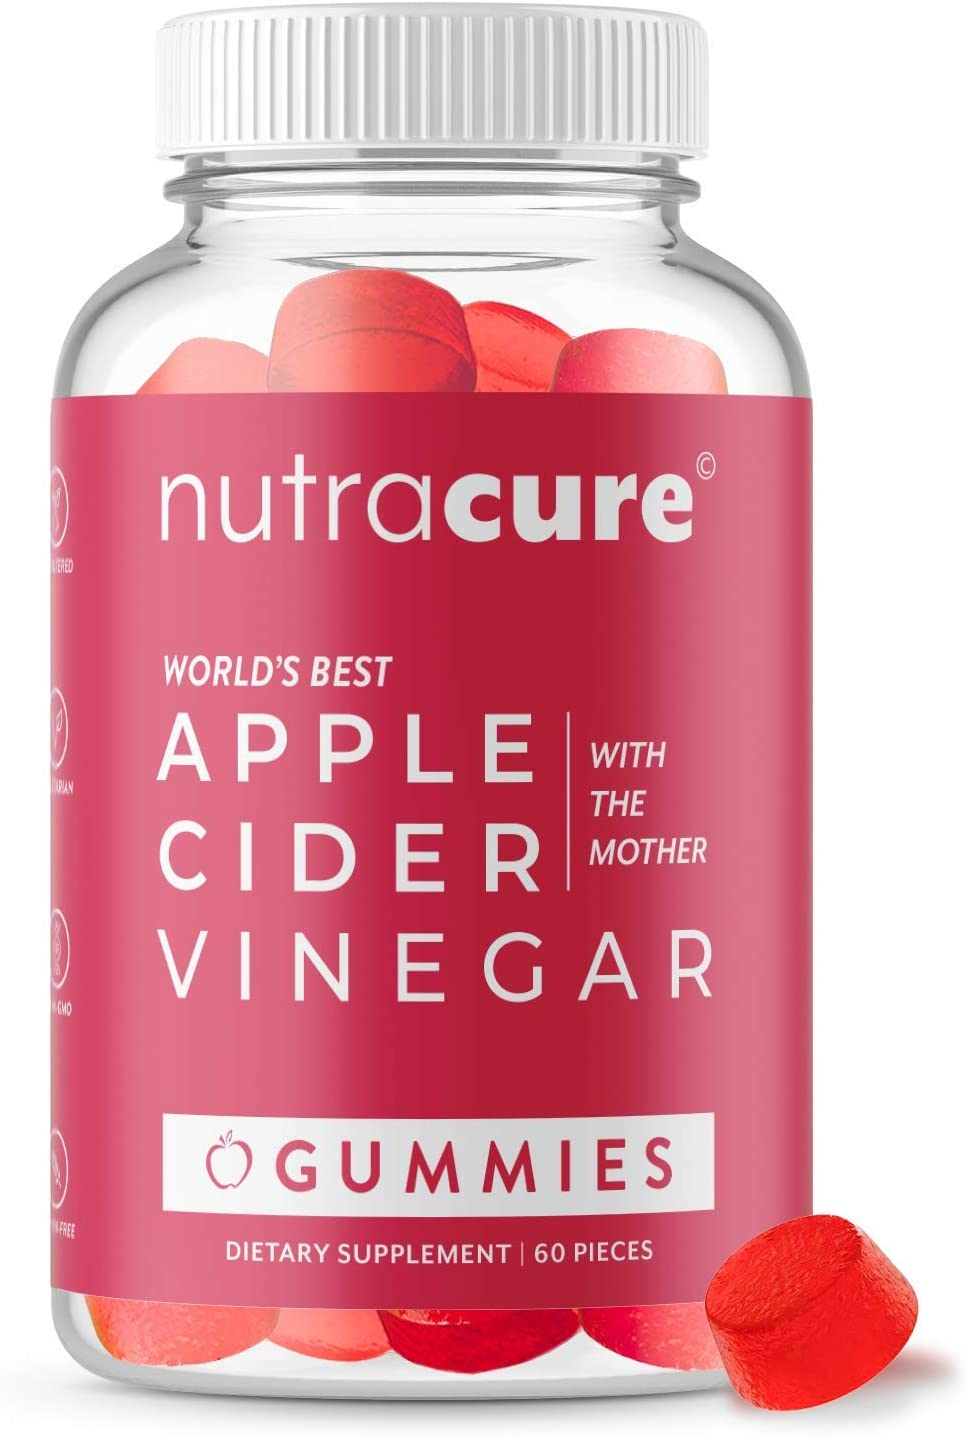 Nutracure Apple Cider Vinegar Gummies for Detox, Cleanse & Weight Management - Organic ACV Gummies with The Mother - 60 Vegan Gummy Vitamins